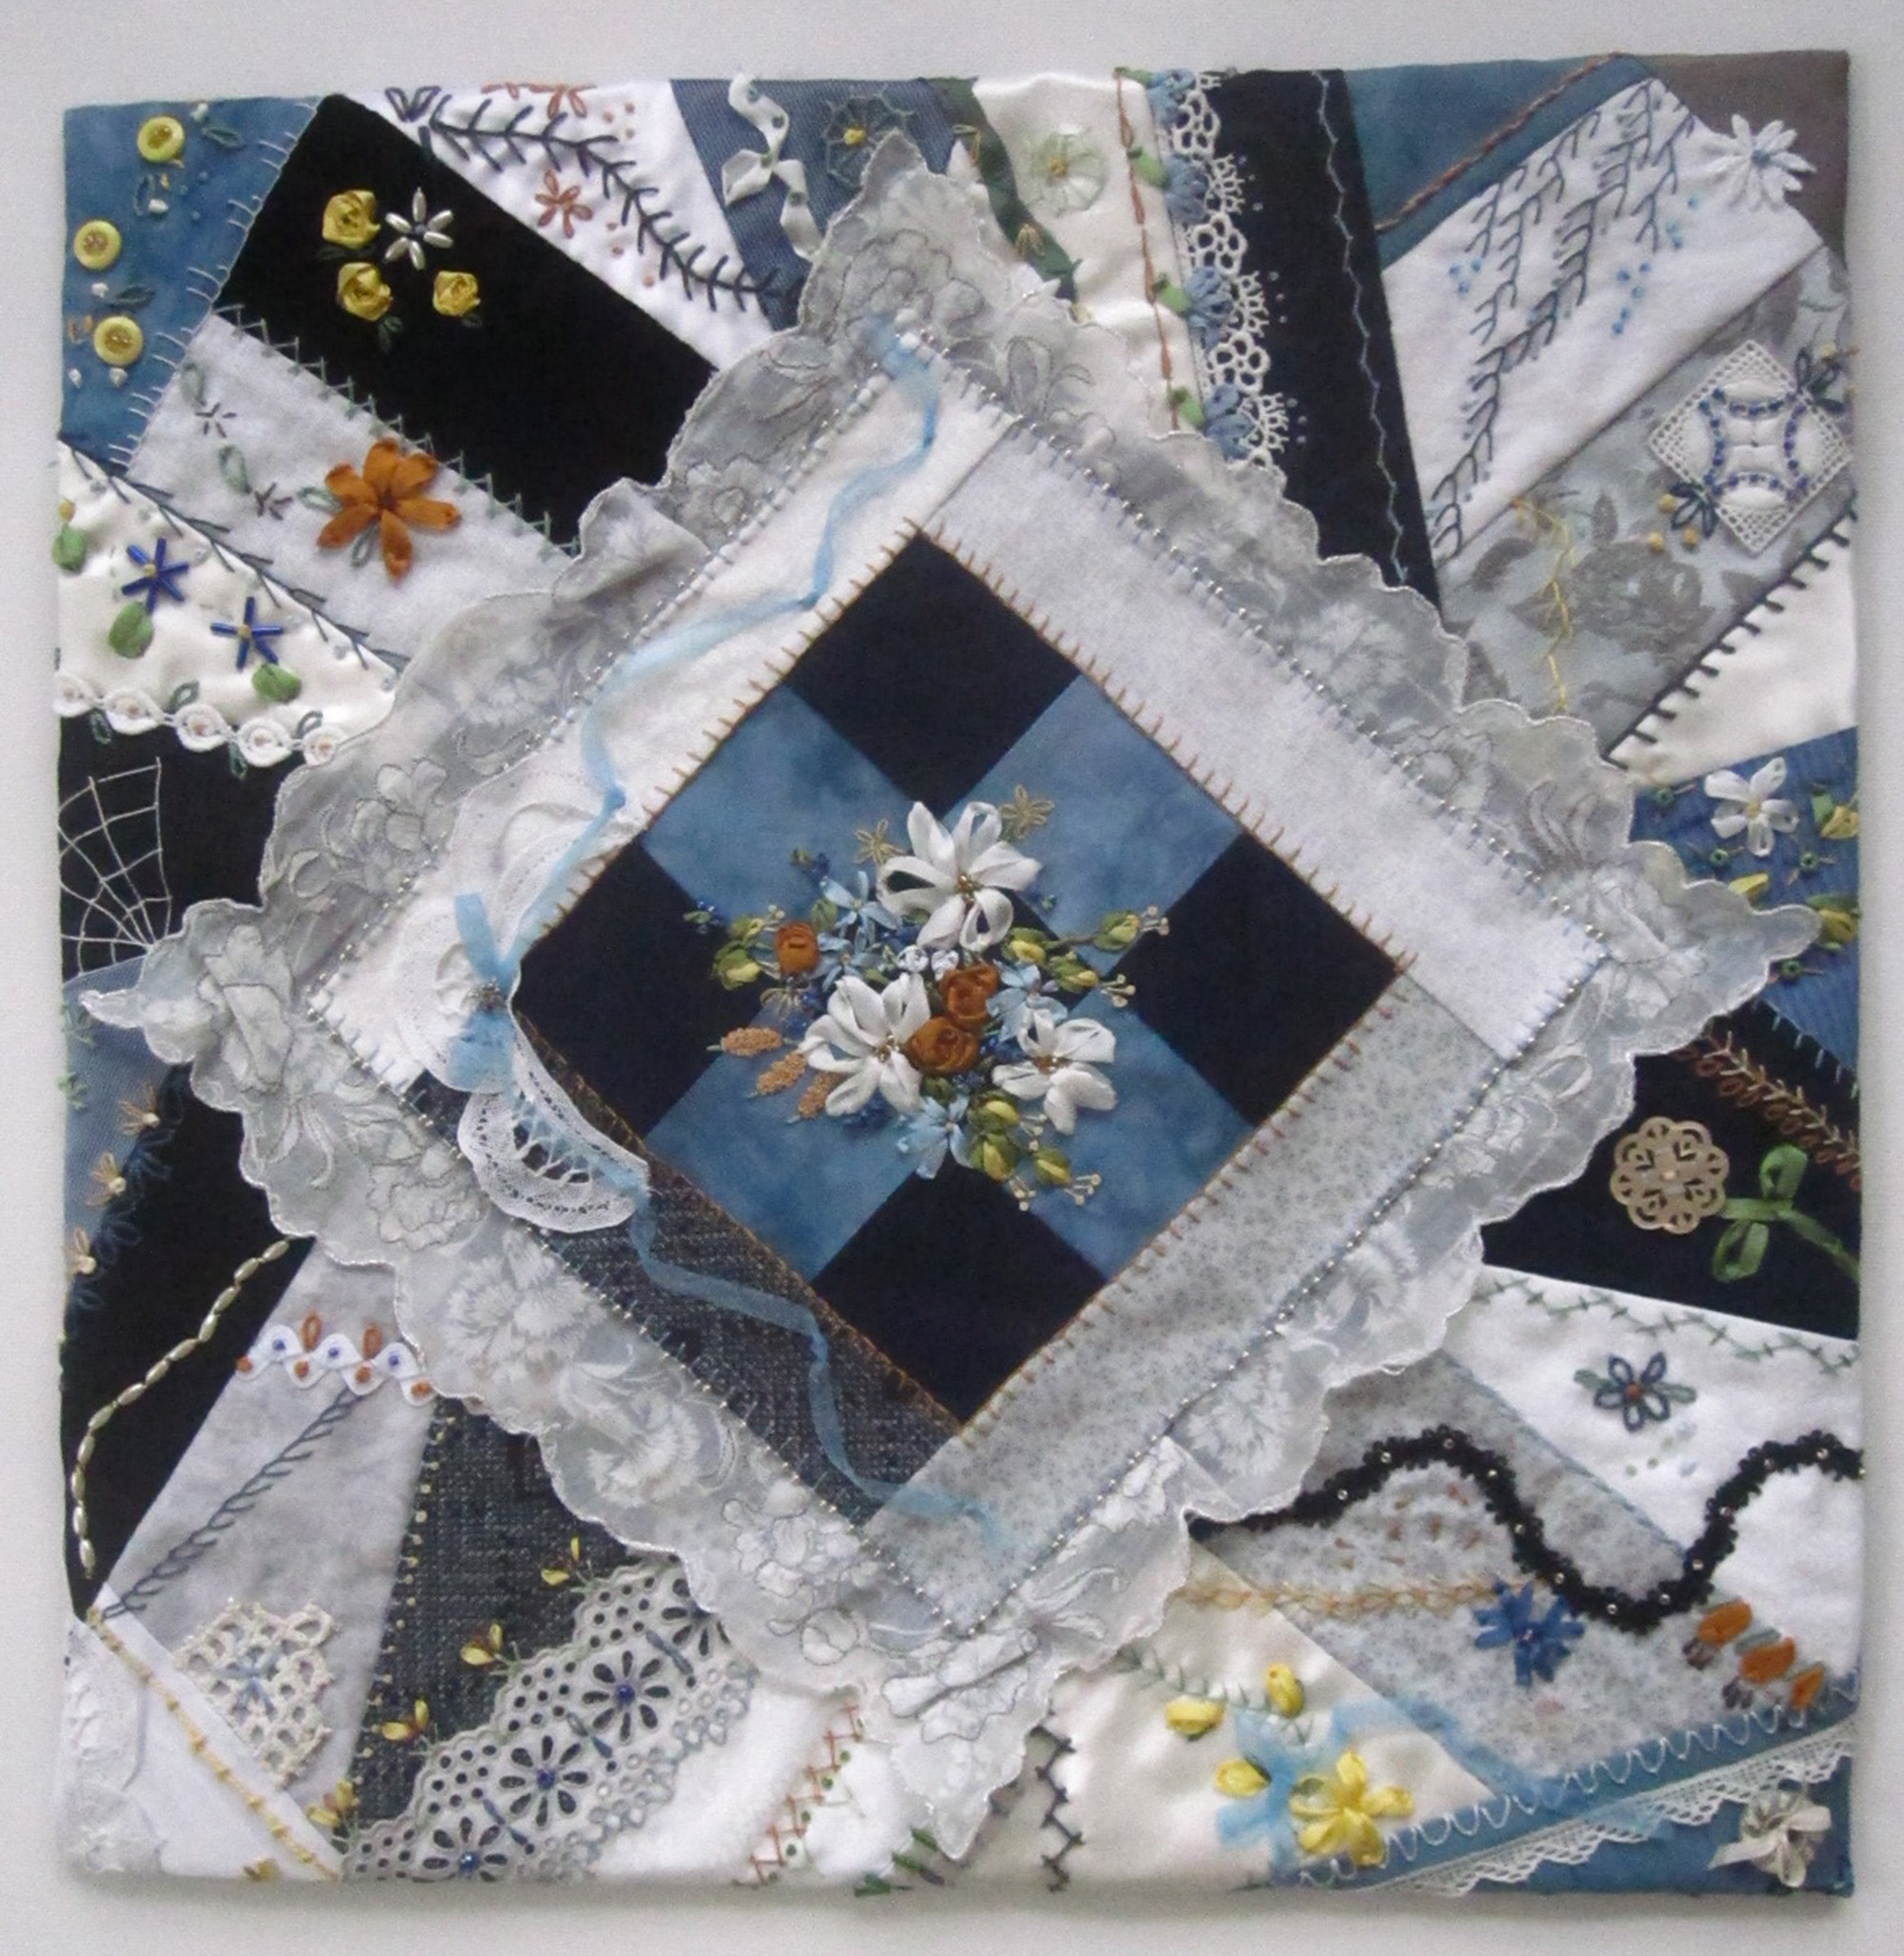 <em>Crazy for Quilting</em>, MaryEllen Sax, Woodbury, MN